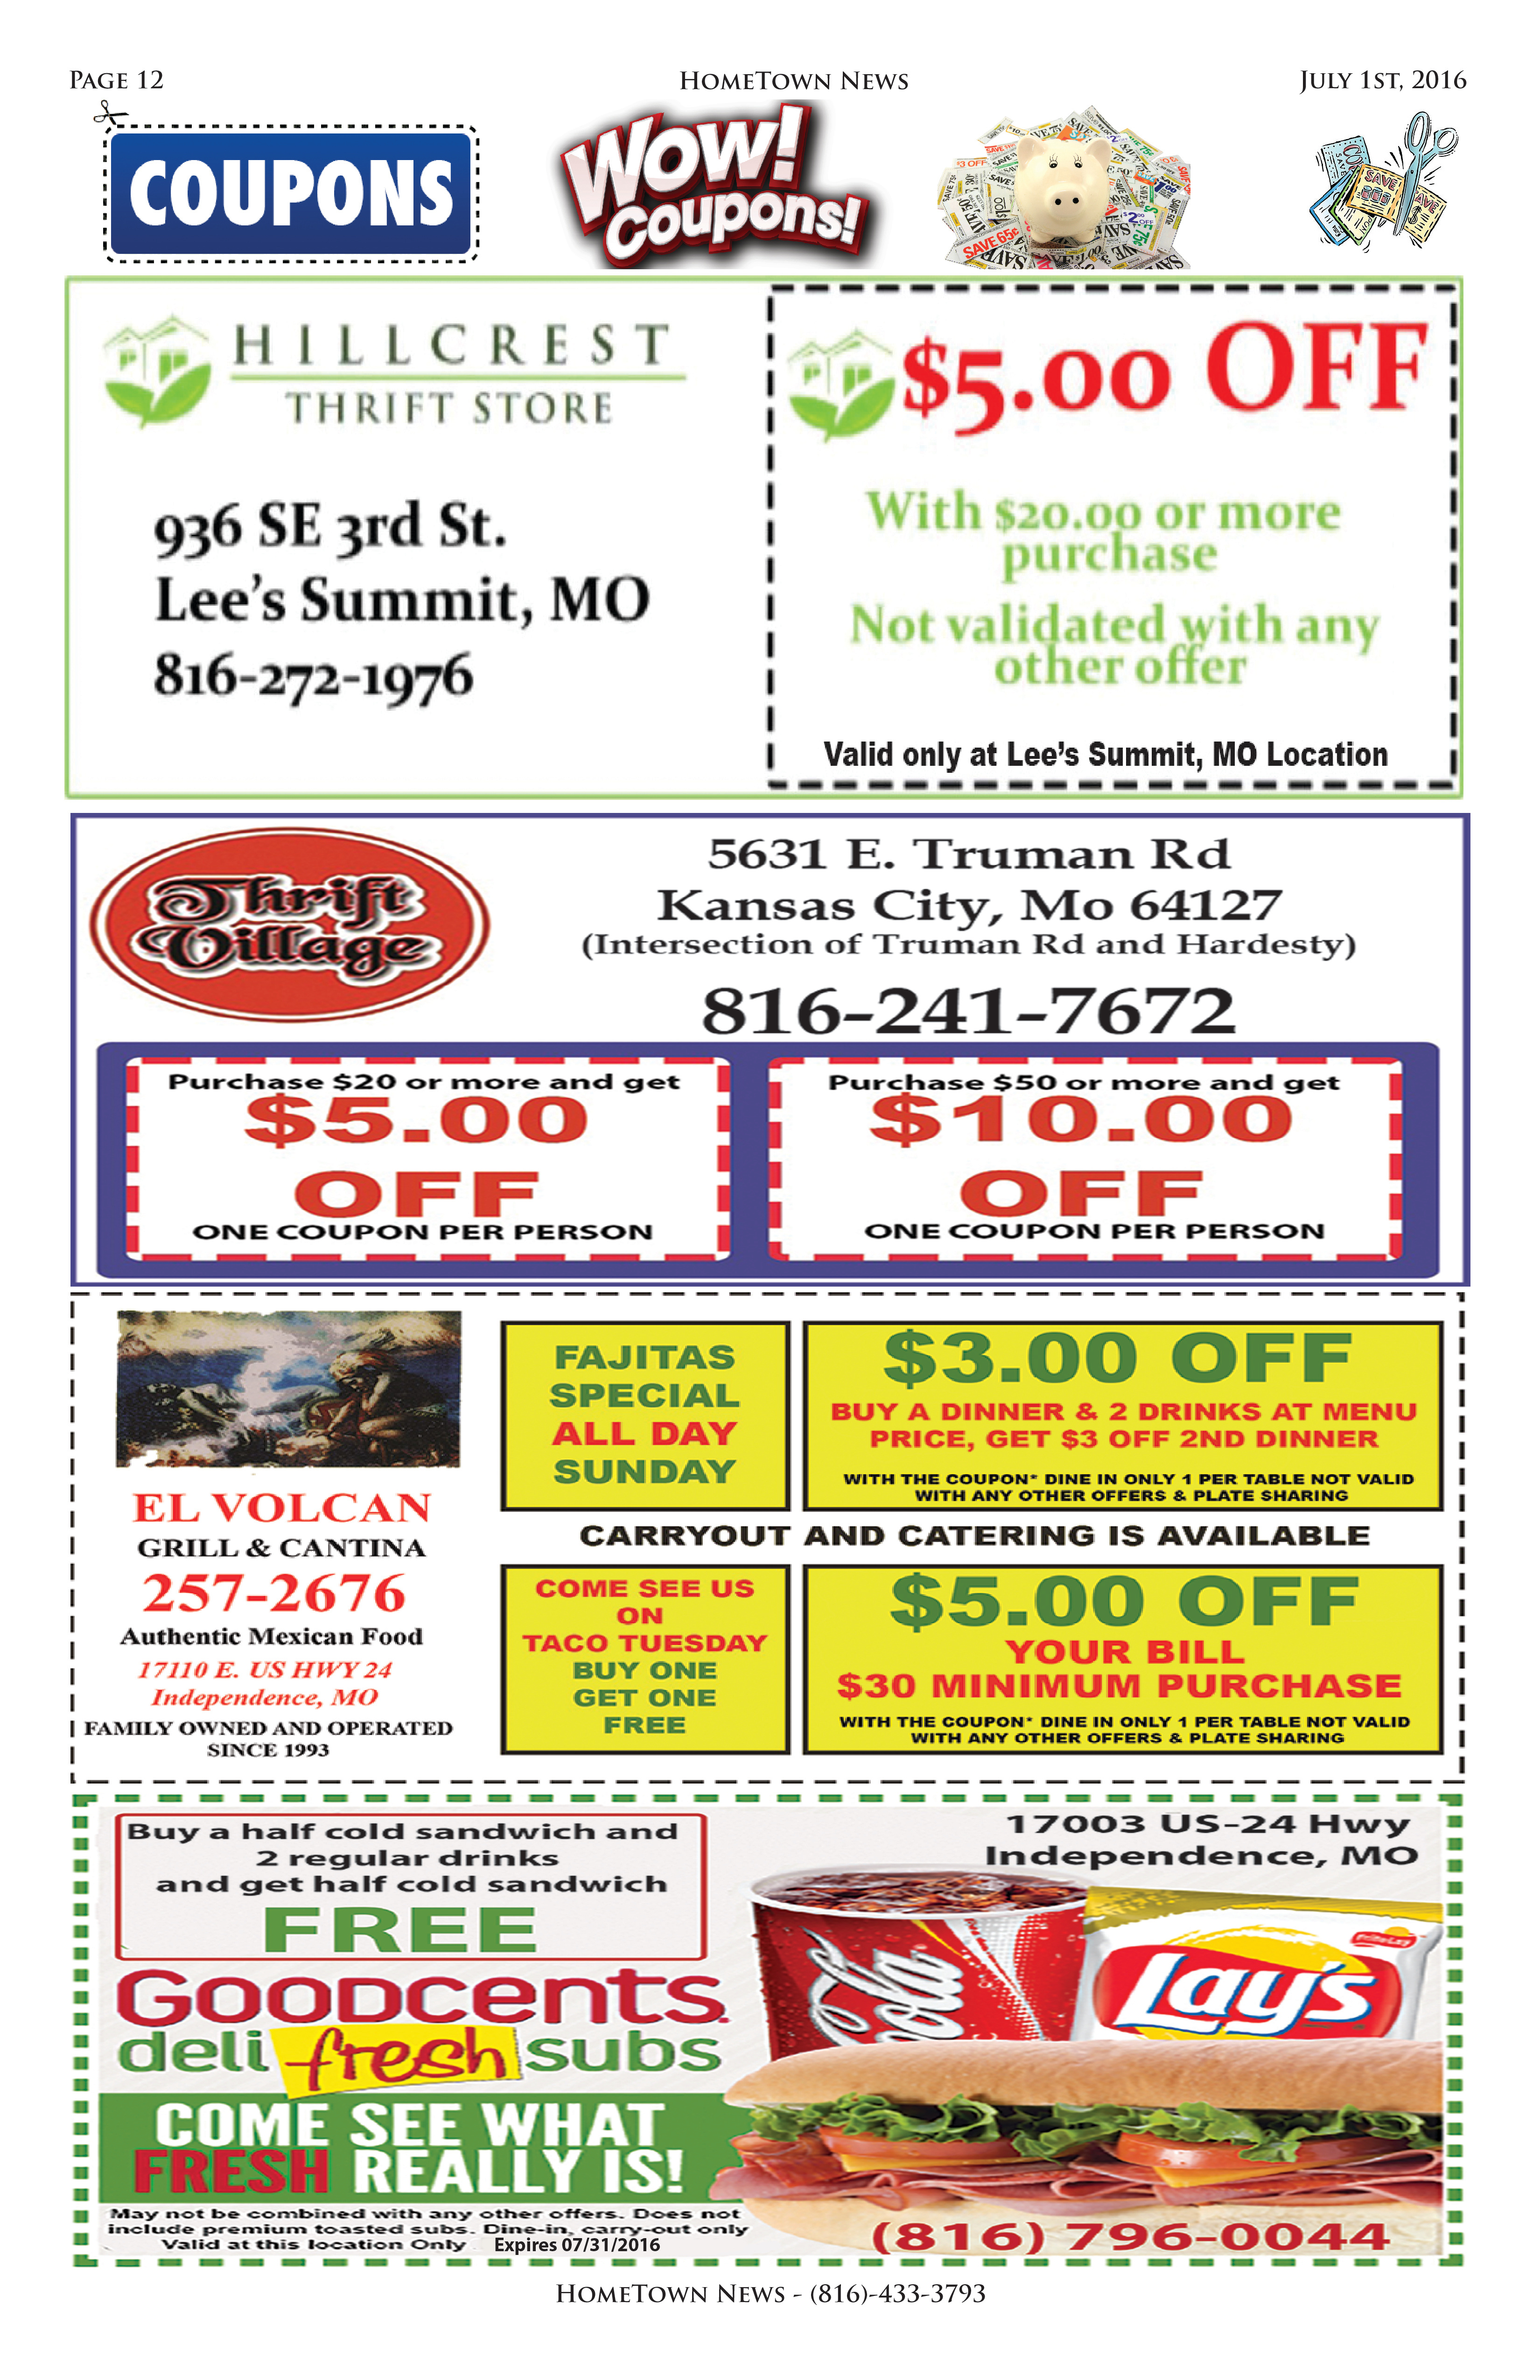 HTN12 - 12 - Coupons